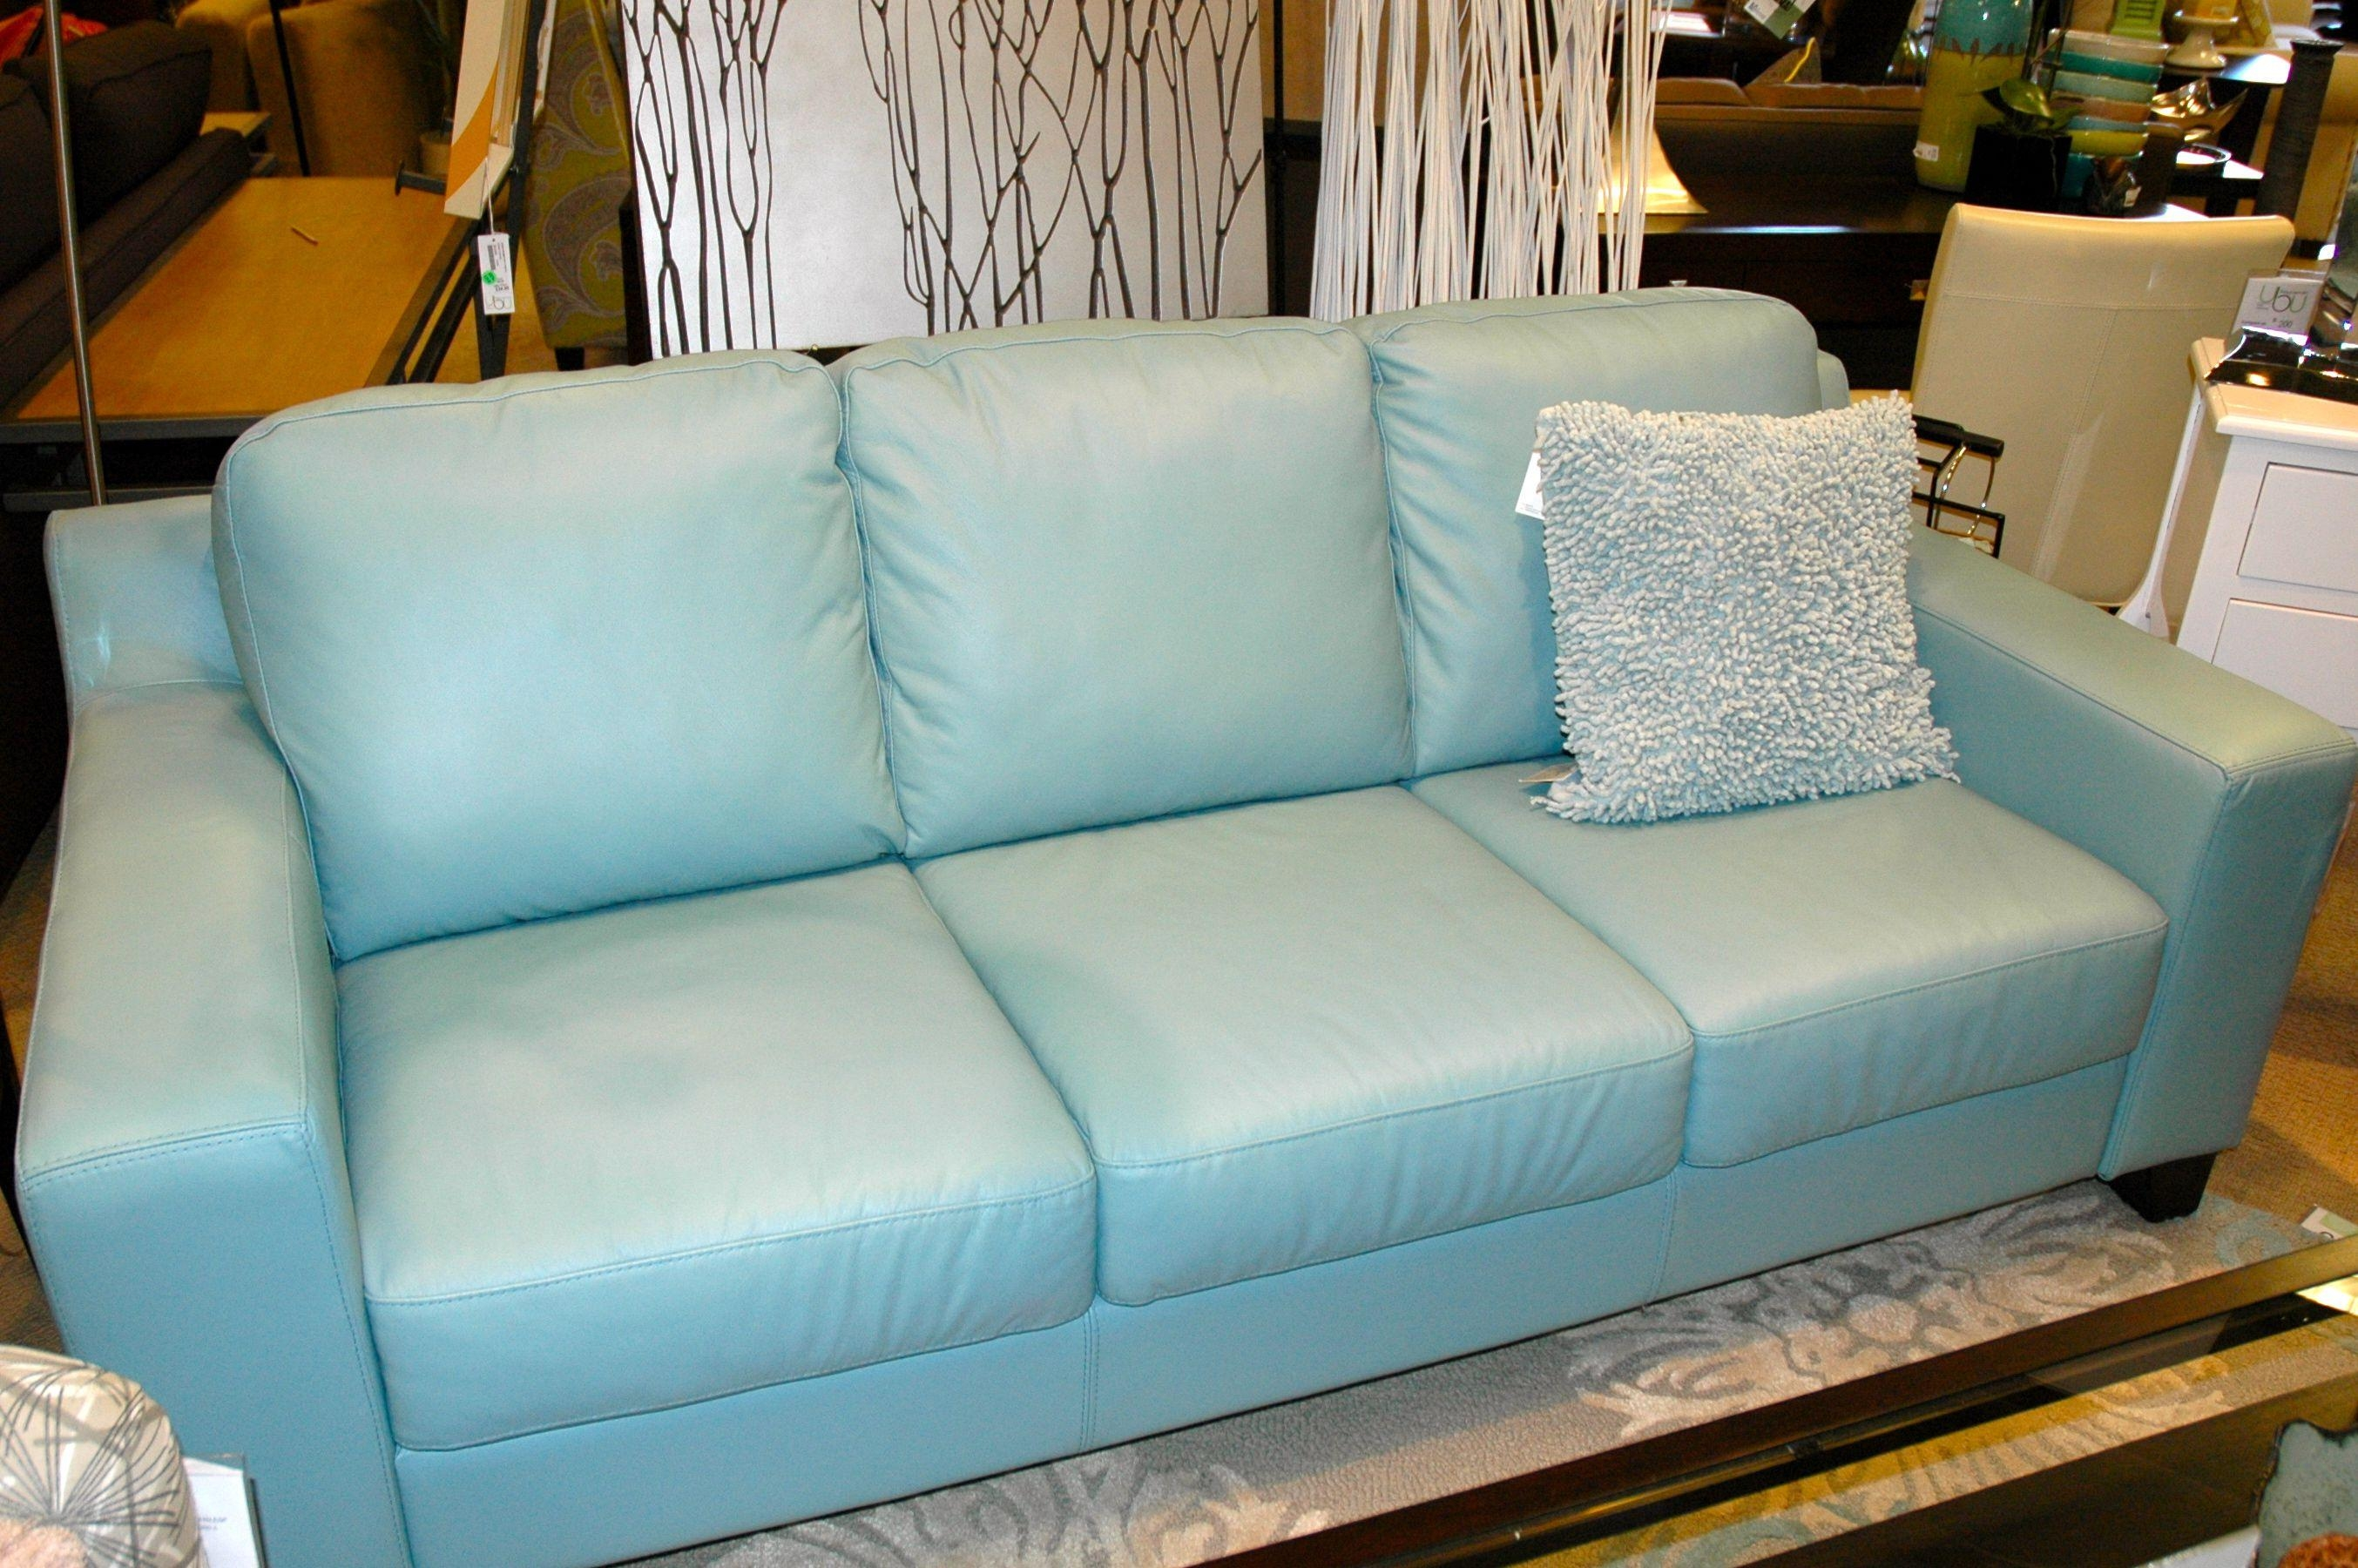 25 Best Ideas About Light Blue Sofa On Pinterest At Light Blue inside Sky Blue Sofas